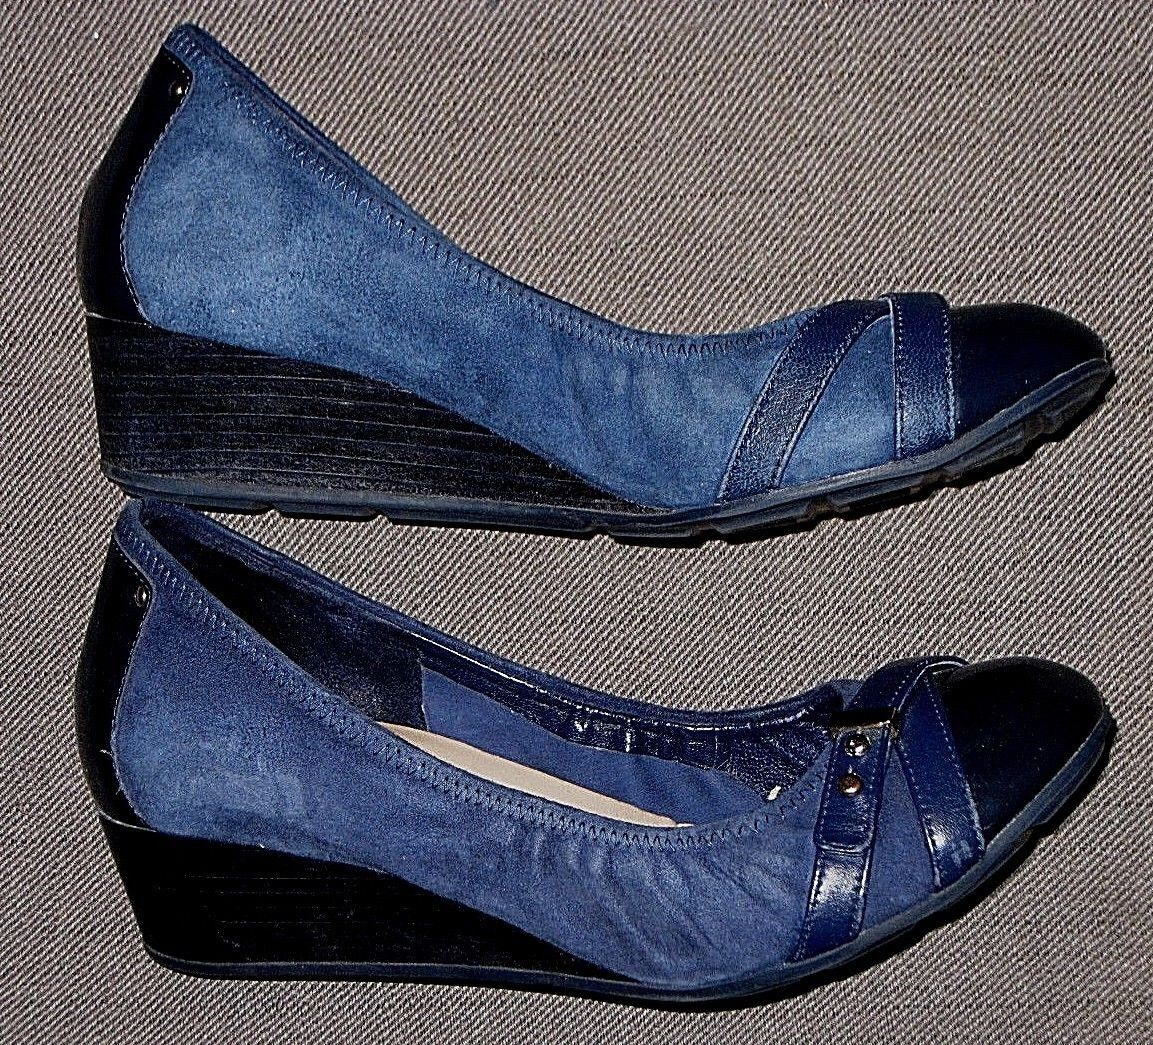 COLE HAAN blueE SUEDE LEATHER STRETCH WEDGE PUMPS SHOES, SIZE 6